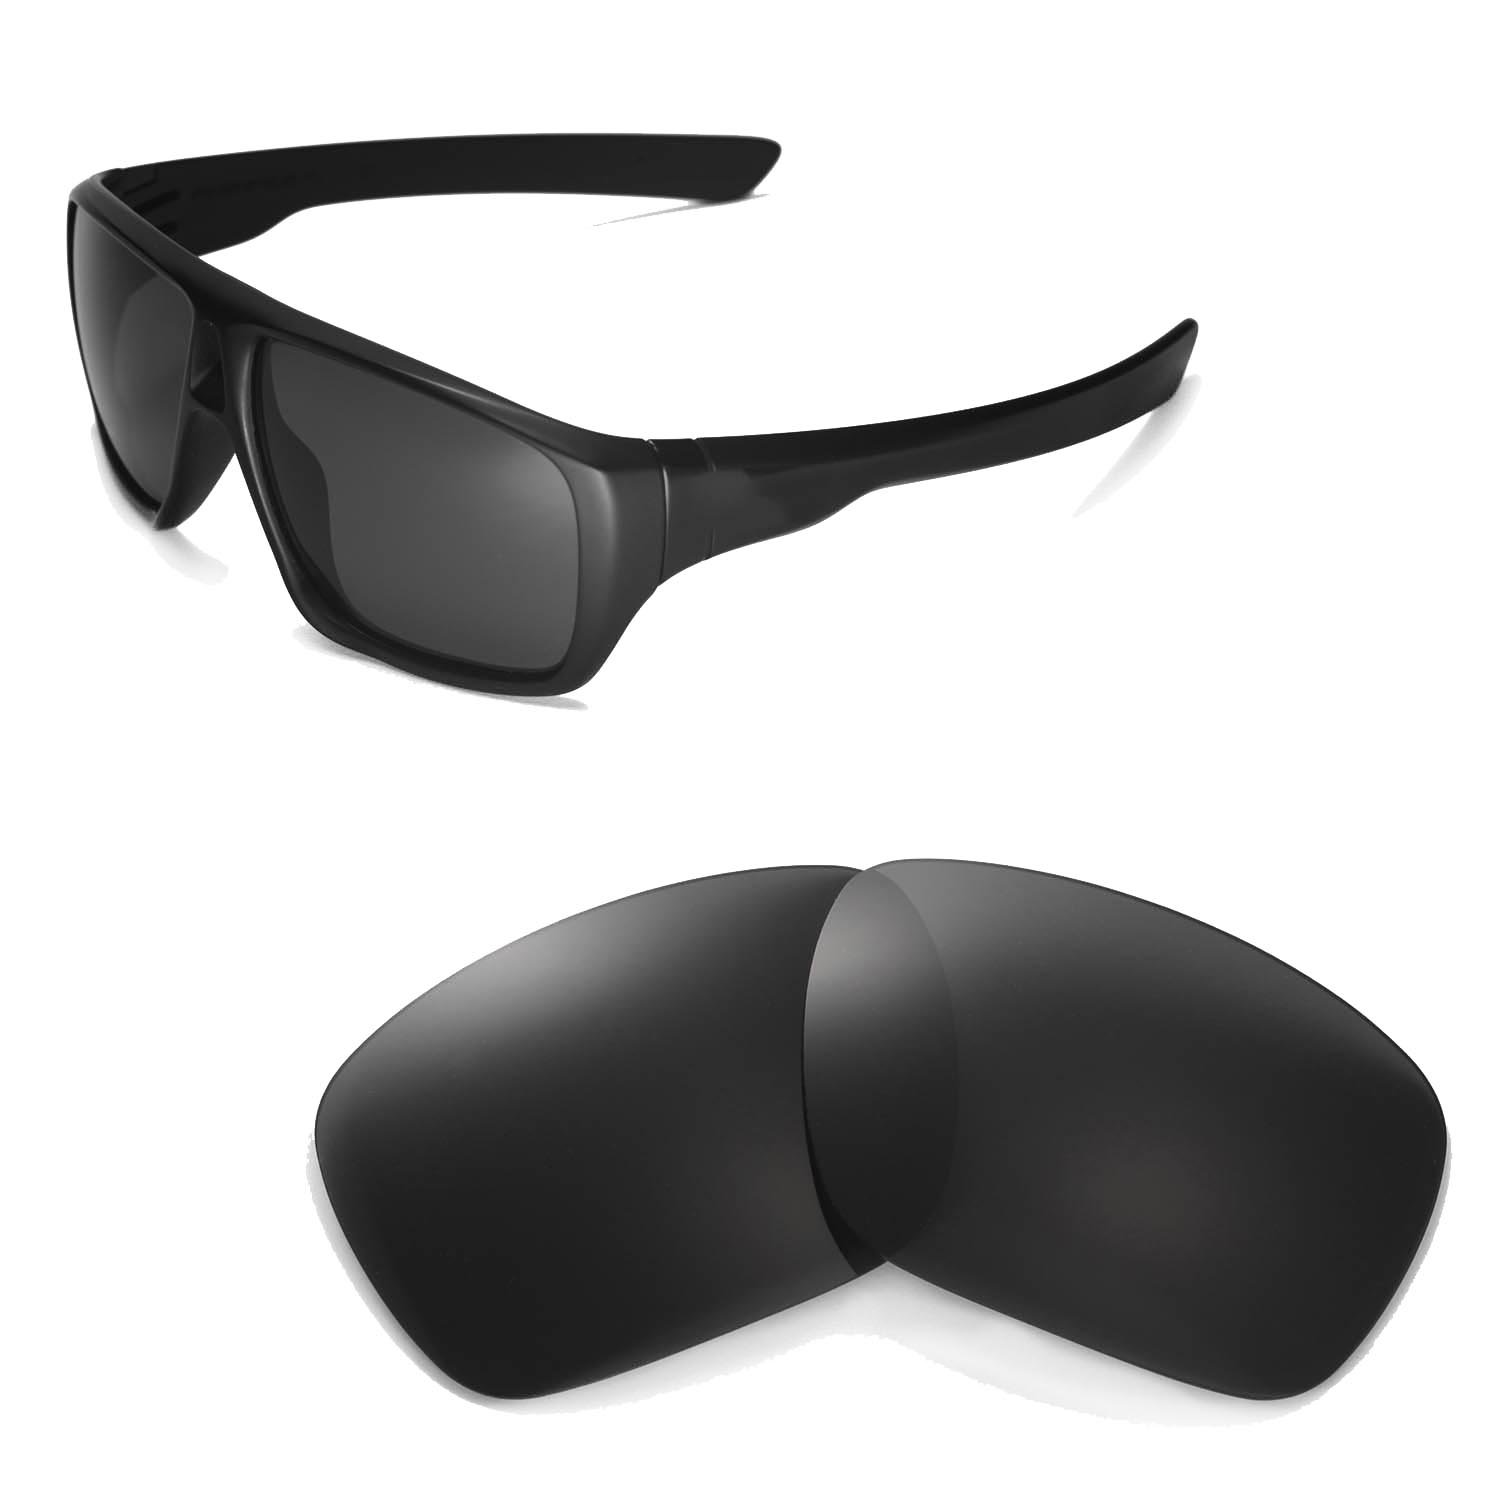 177c9ae88c Amazon.com  Walleva Replacement Lenses for Oakley Dispatch Sunglasses - Multiple  Options Available (Black)  Sports   Outdoors